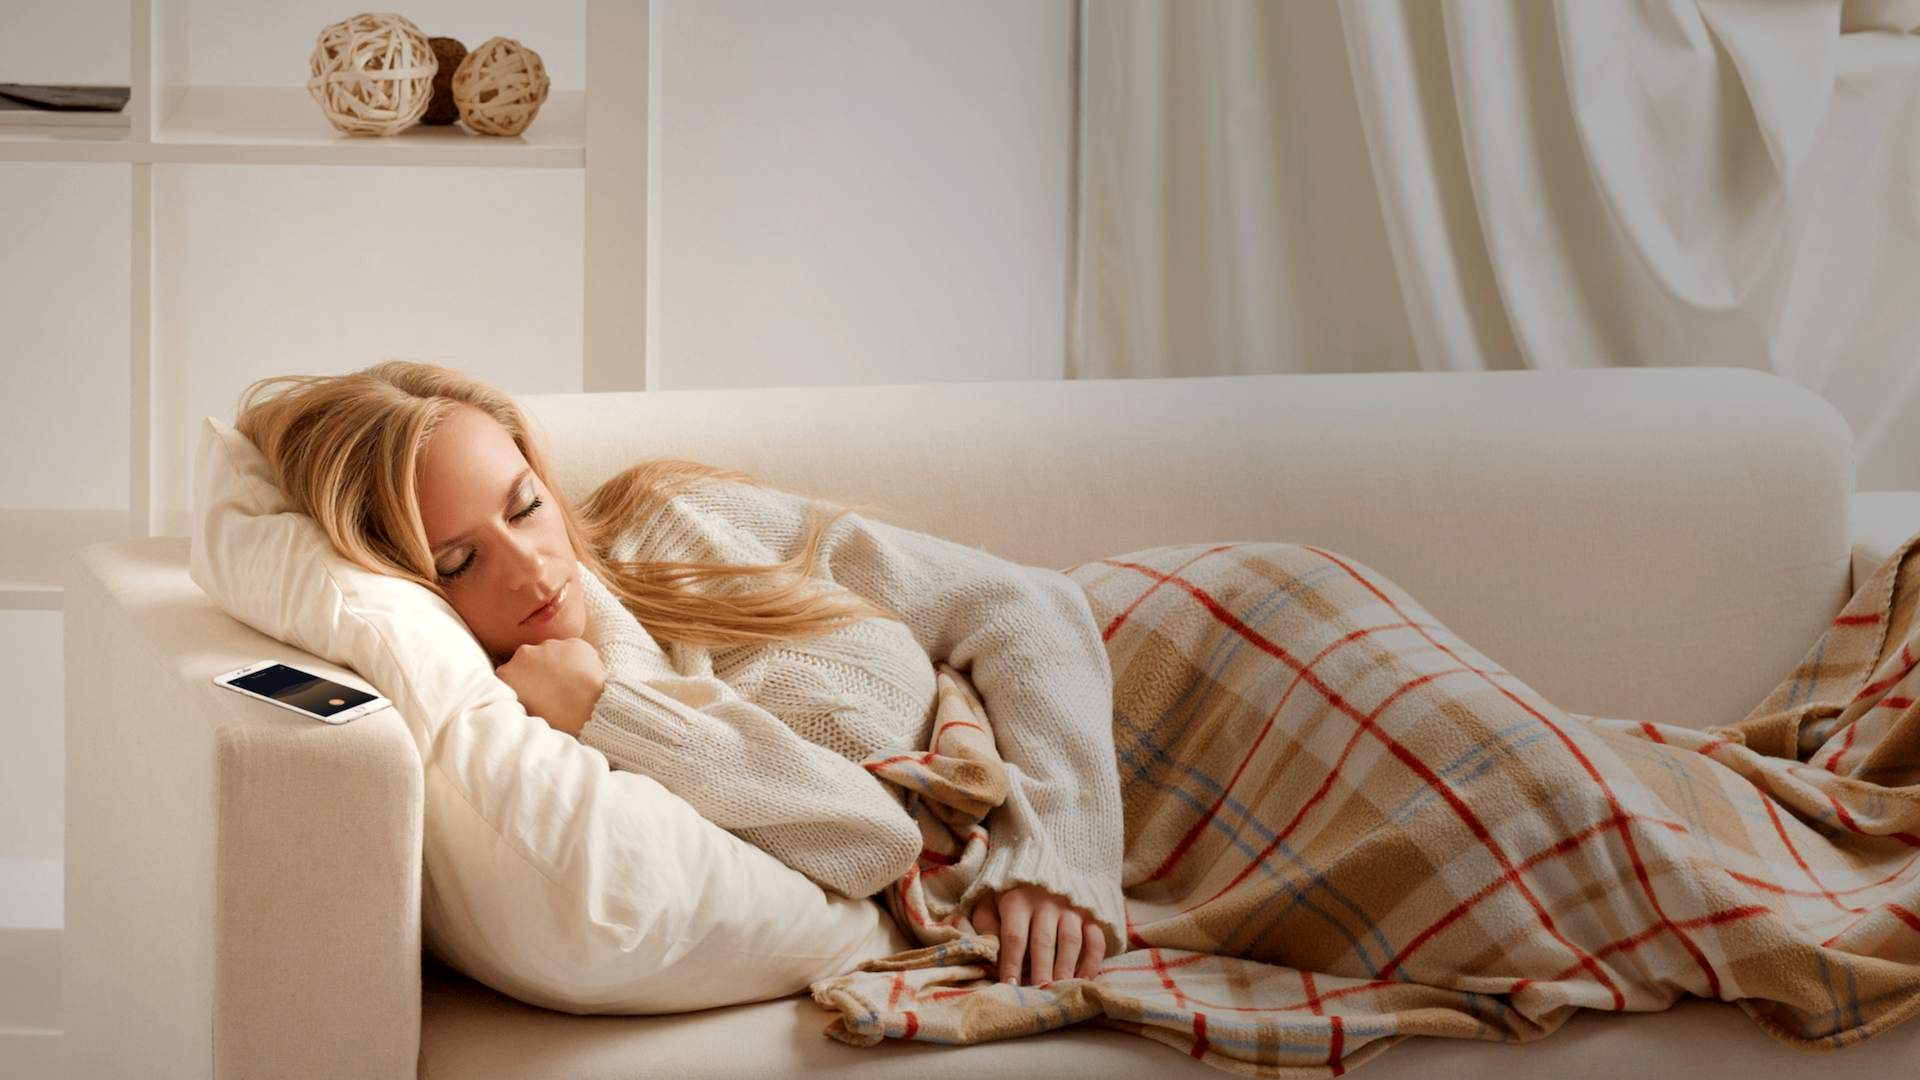 Woman sleeping on her couch with the Pzizz app on her iPhone